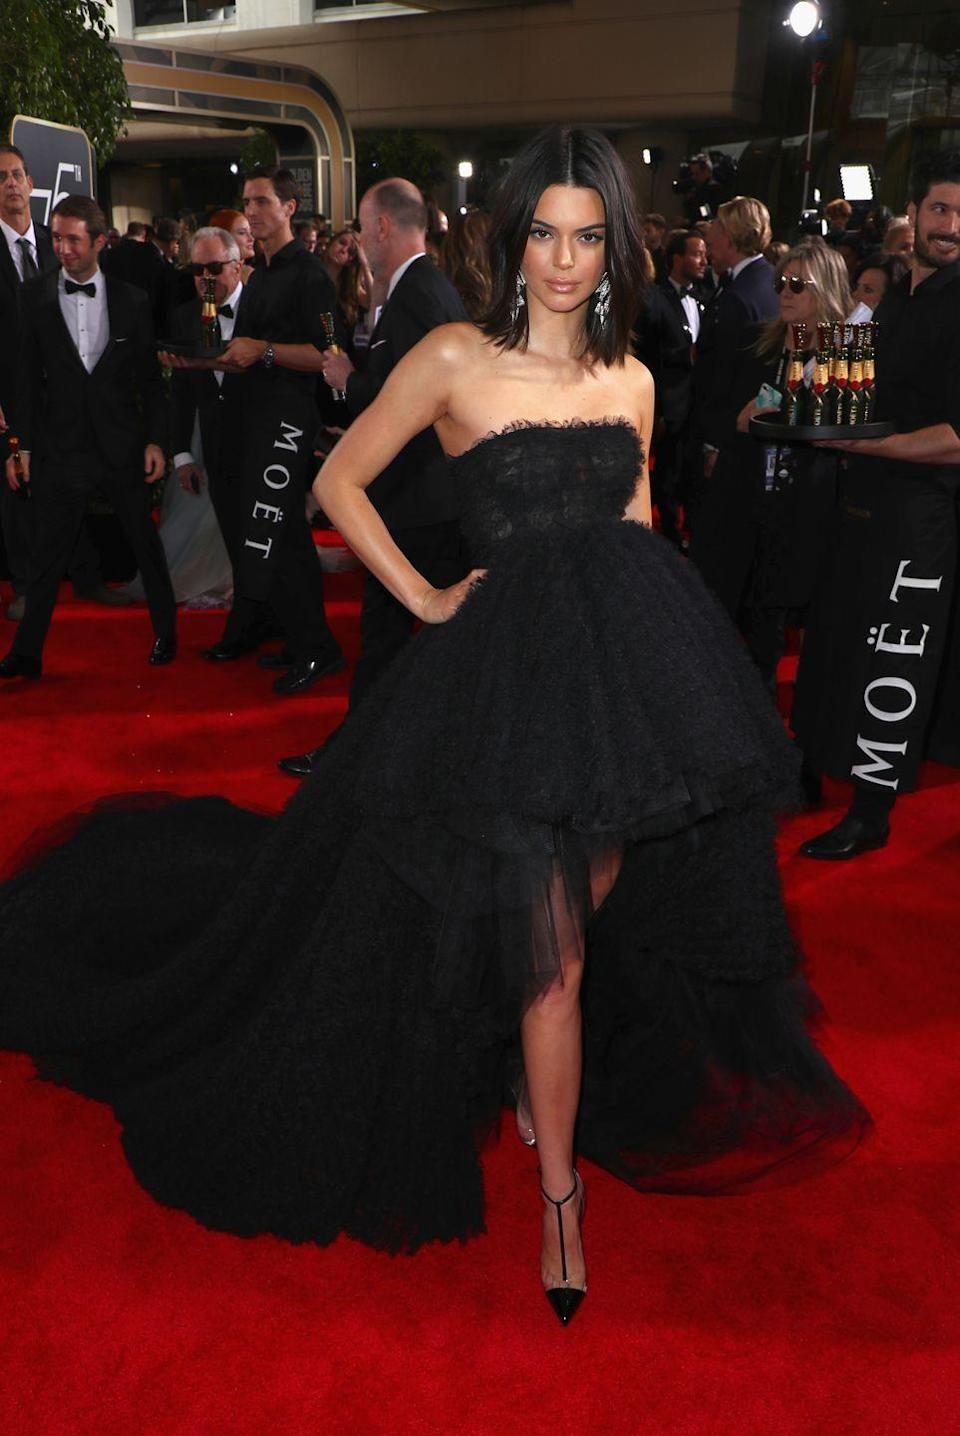 <p>The model wore a black Giambattista Valli gown for the 75th Annual Golden Globe Awards</p>